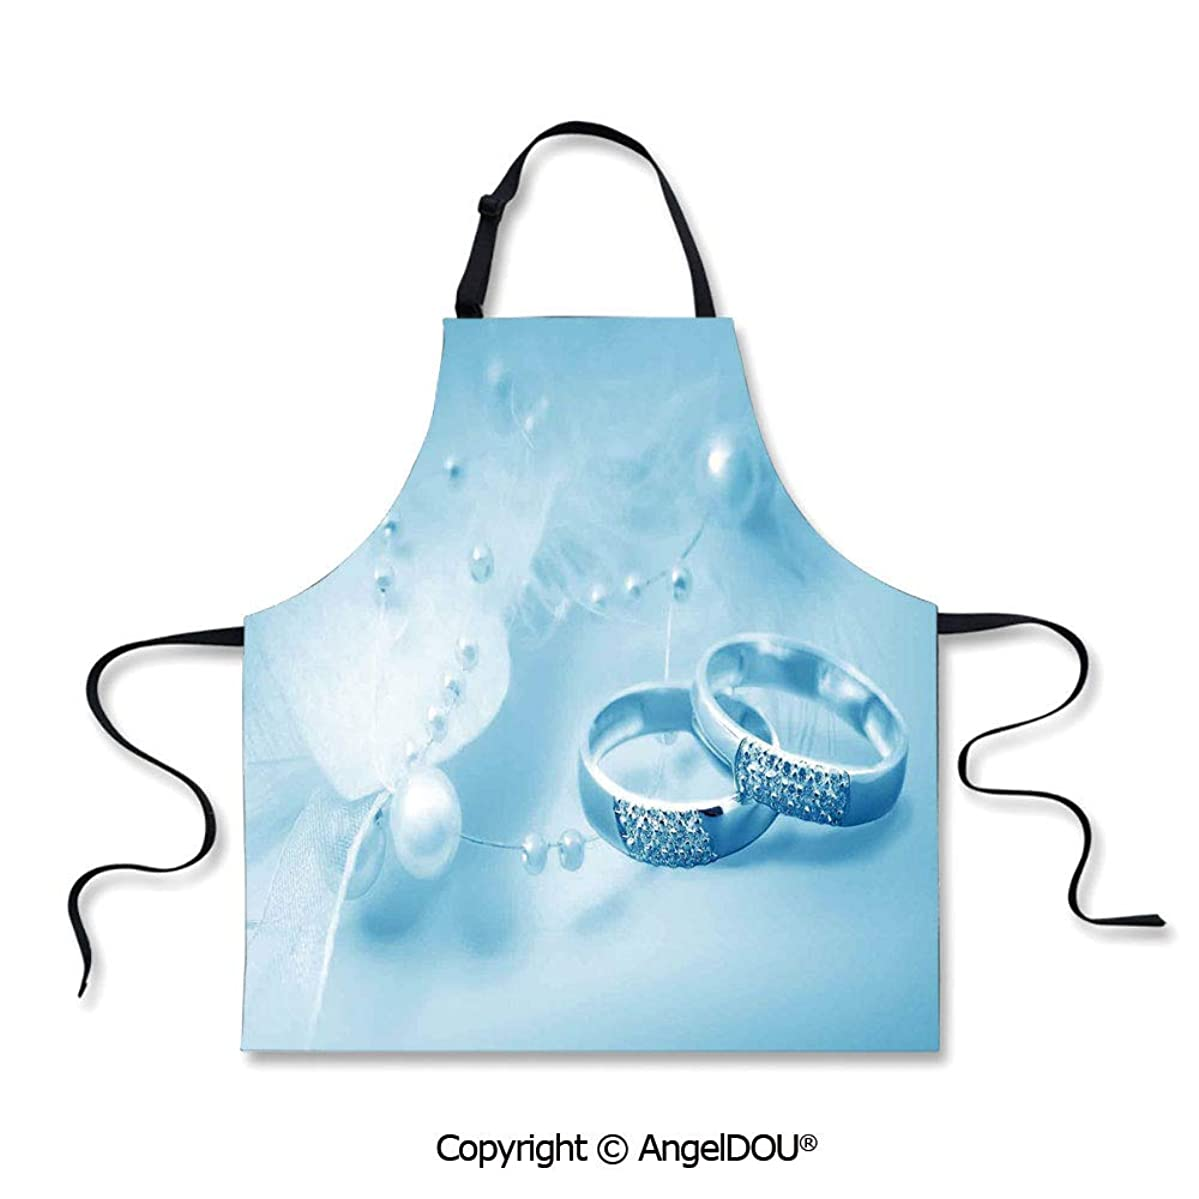 SCOXIXI Printed Unique Cool Kitchen Apron Engagement Wedding Rings with Pearls on Blue Dreamy Background for Grill BBQ Cooking Cosplay Party.